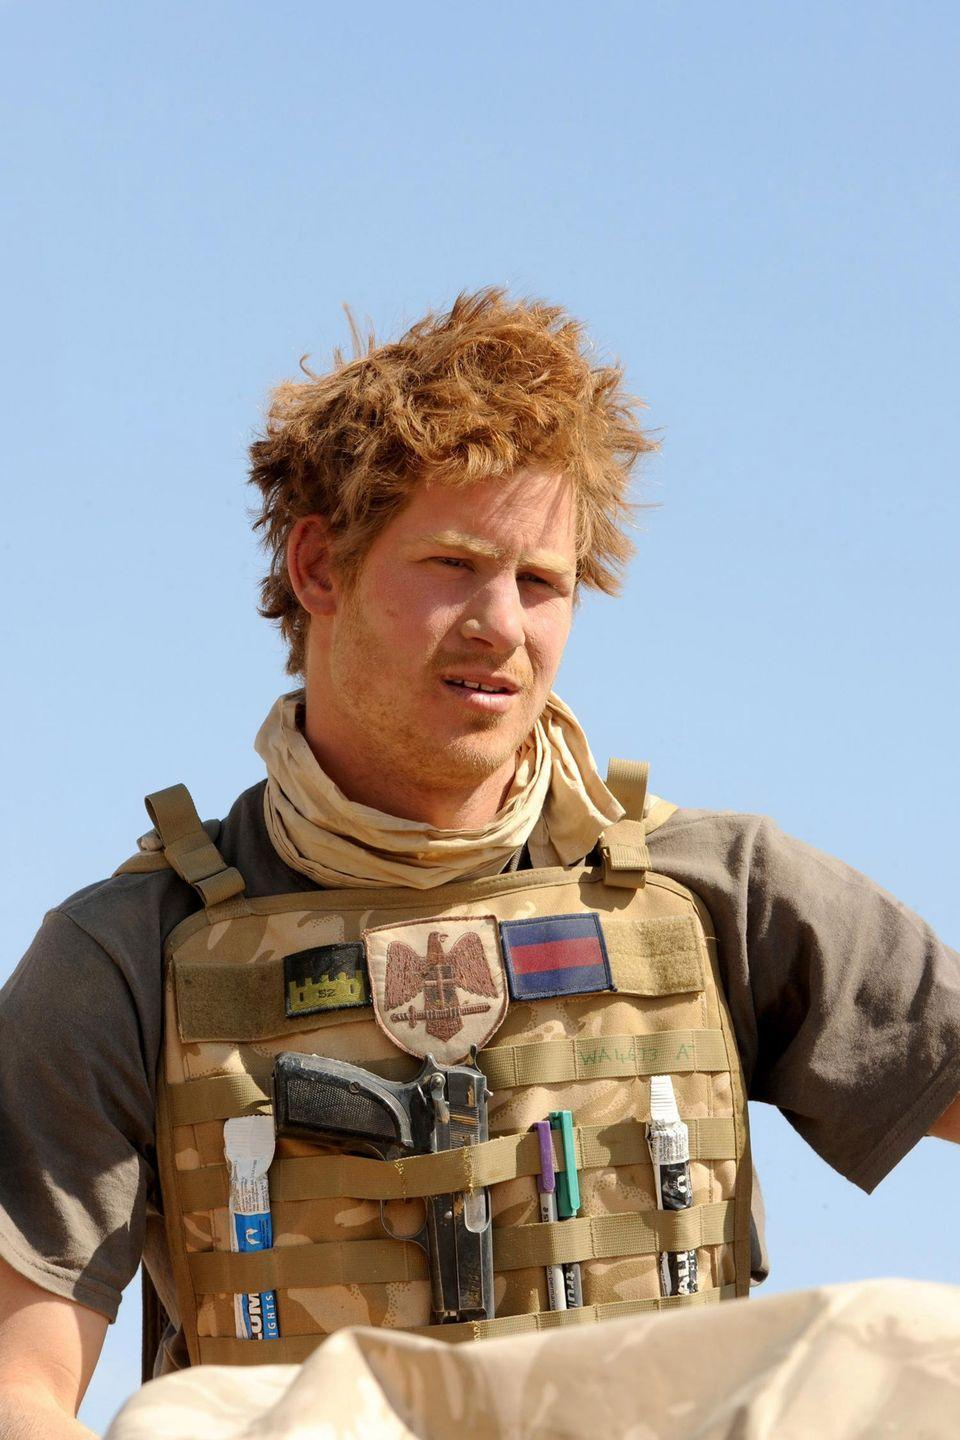 <p>Prince Harry is photographed on an armored vehicle in the desert of Afghanistan during his time in the Royal Military Academy. </p>